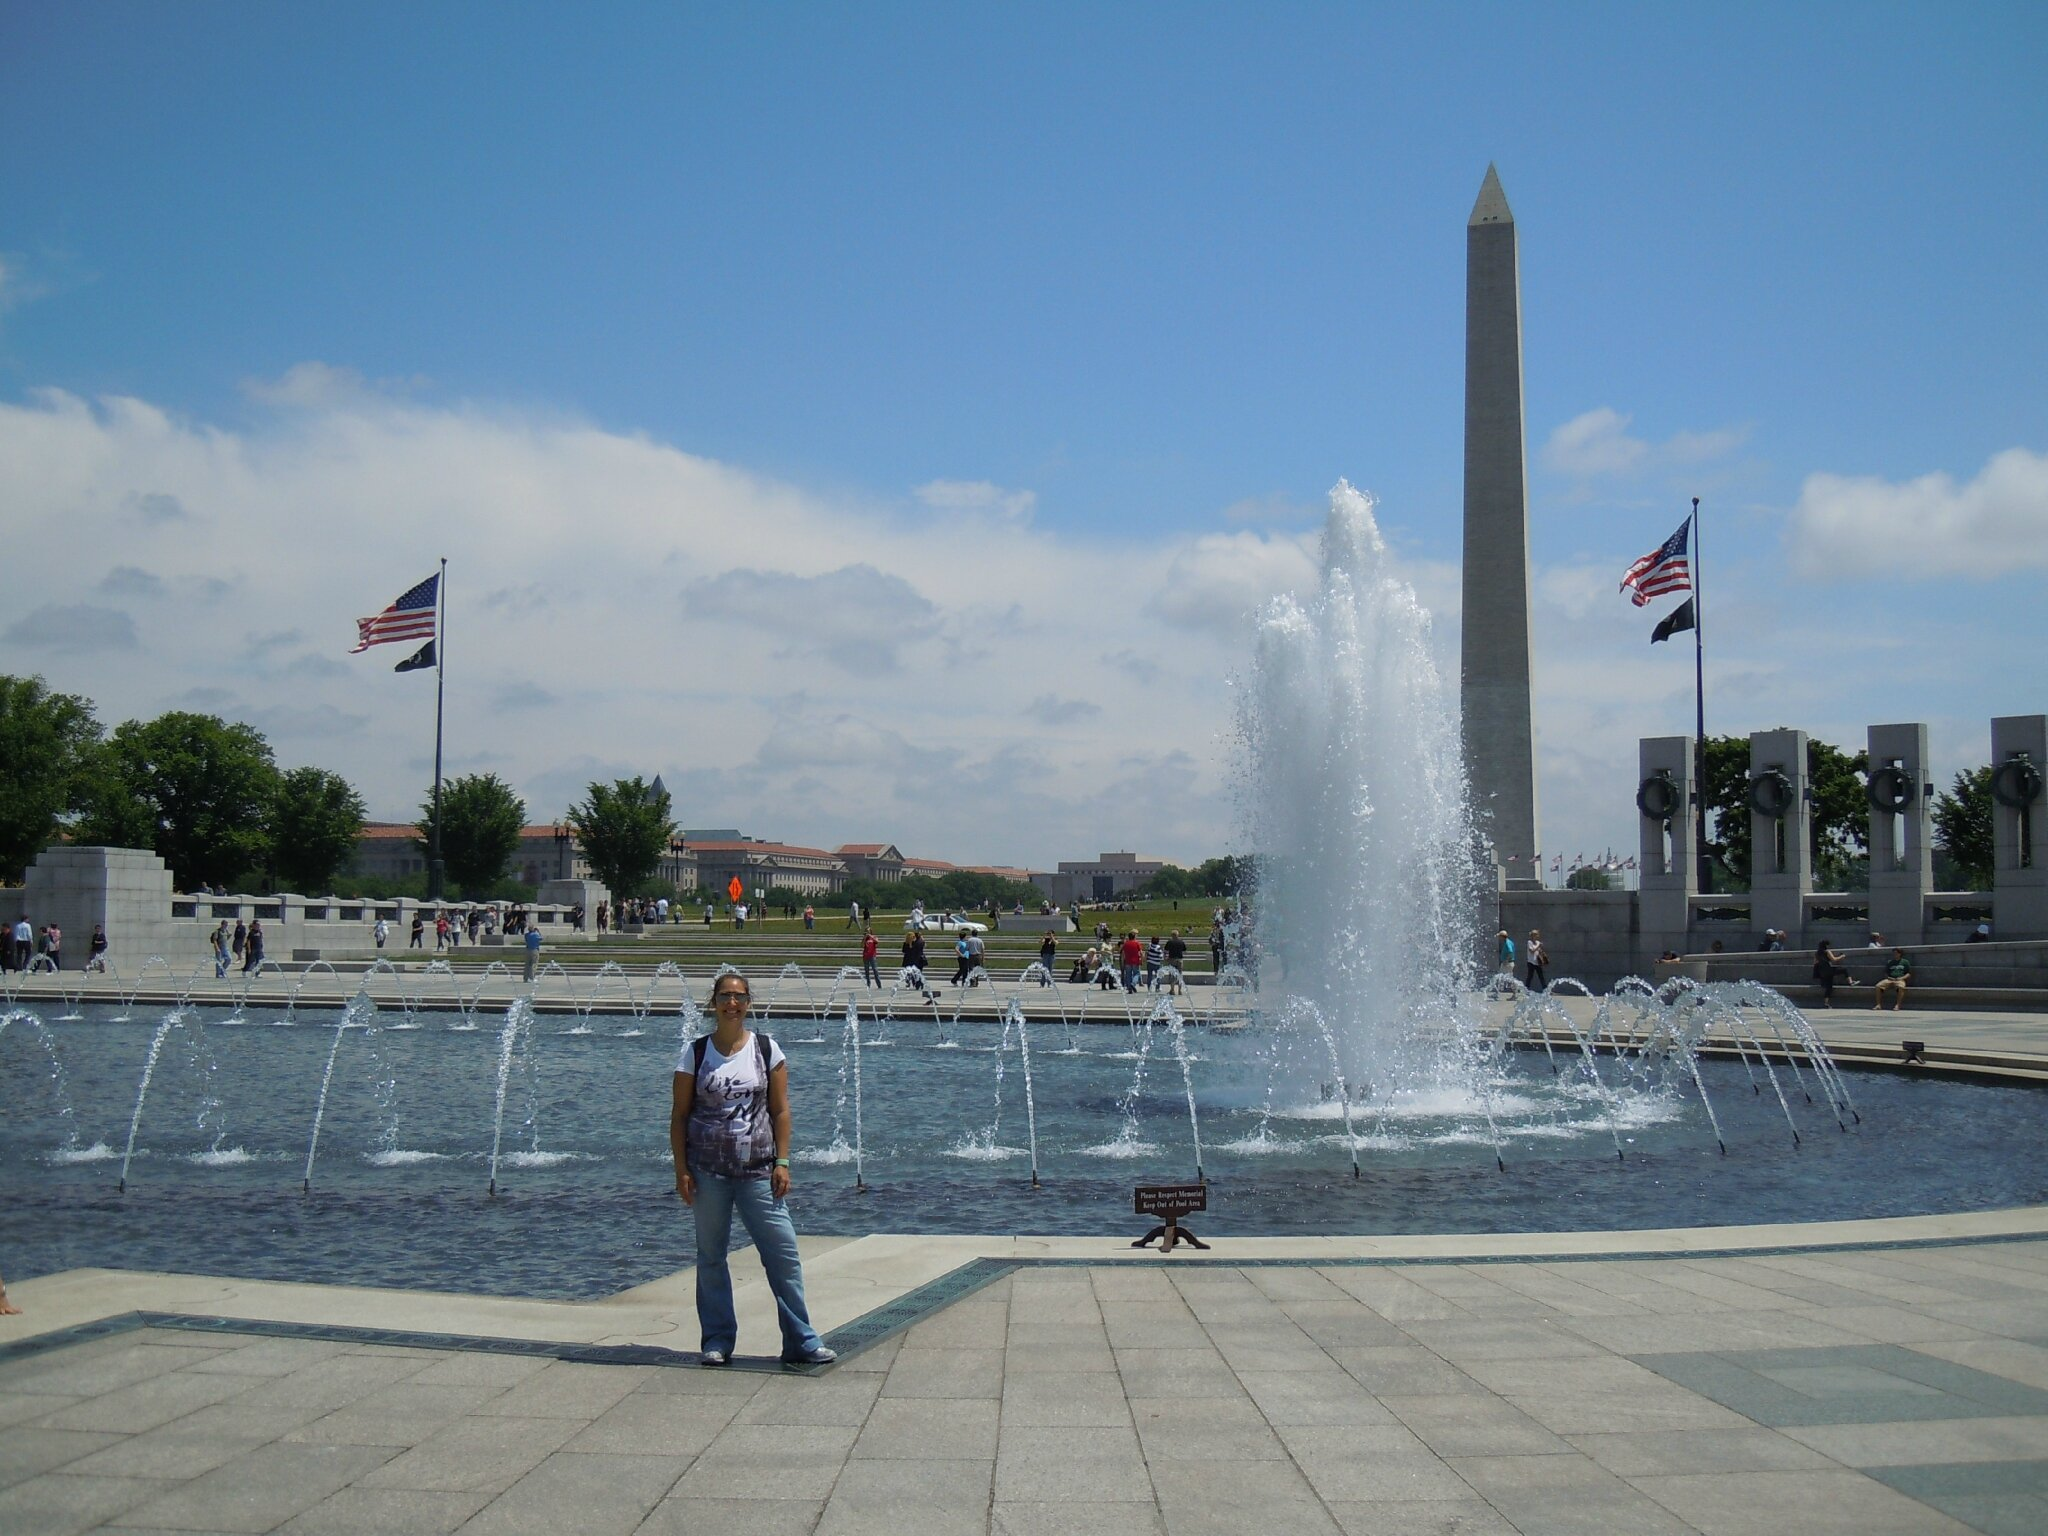 THE MALL (223)